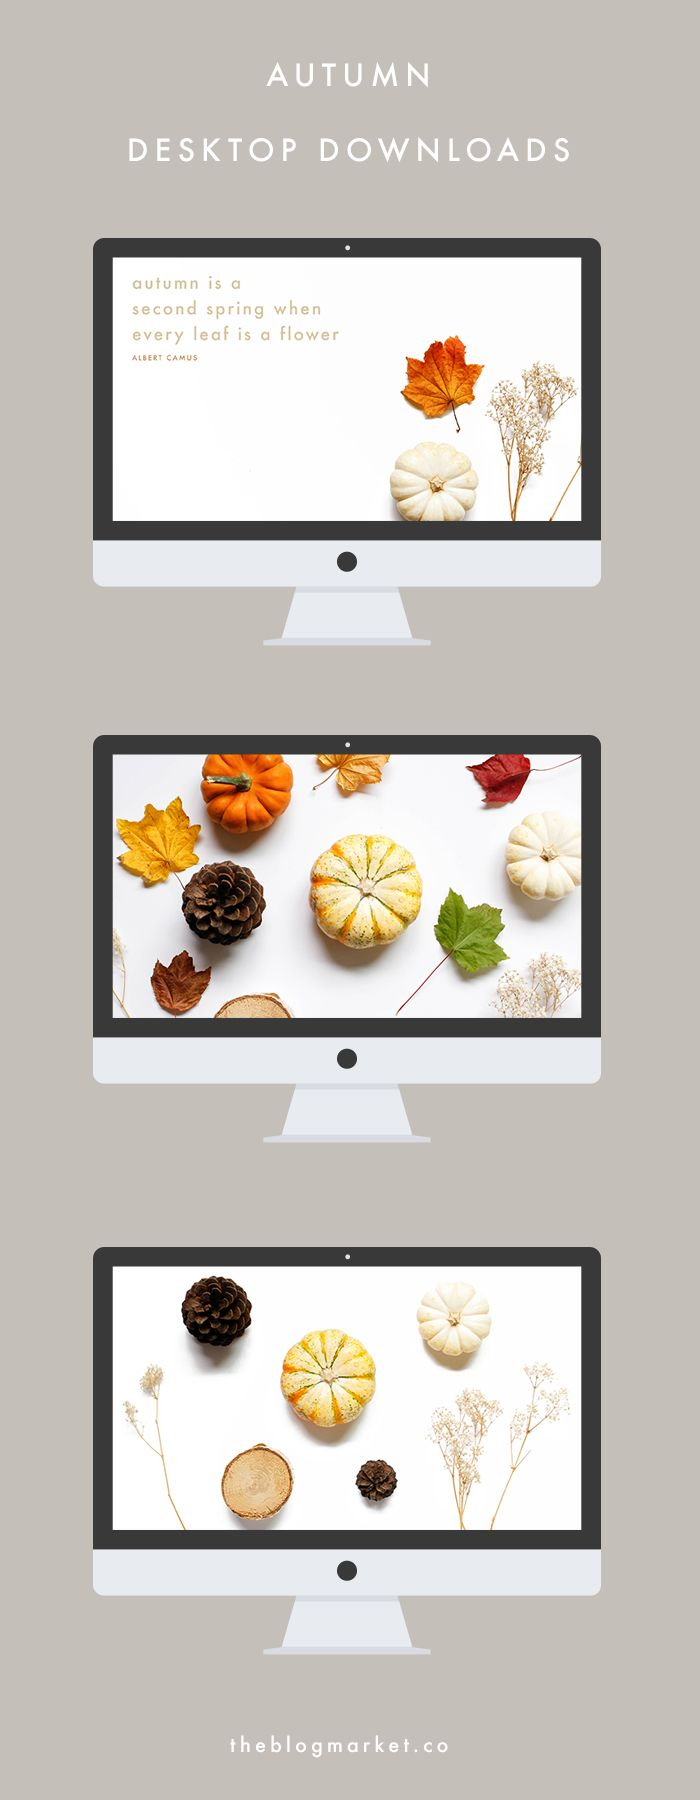 Autumn Desktop Downloads | The Blog Market